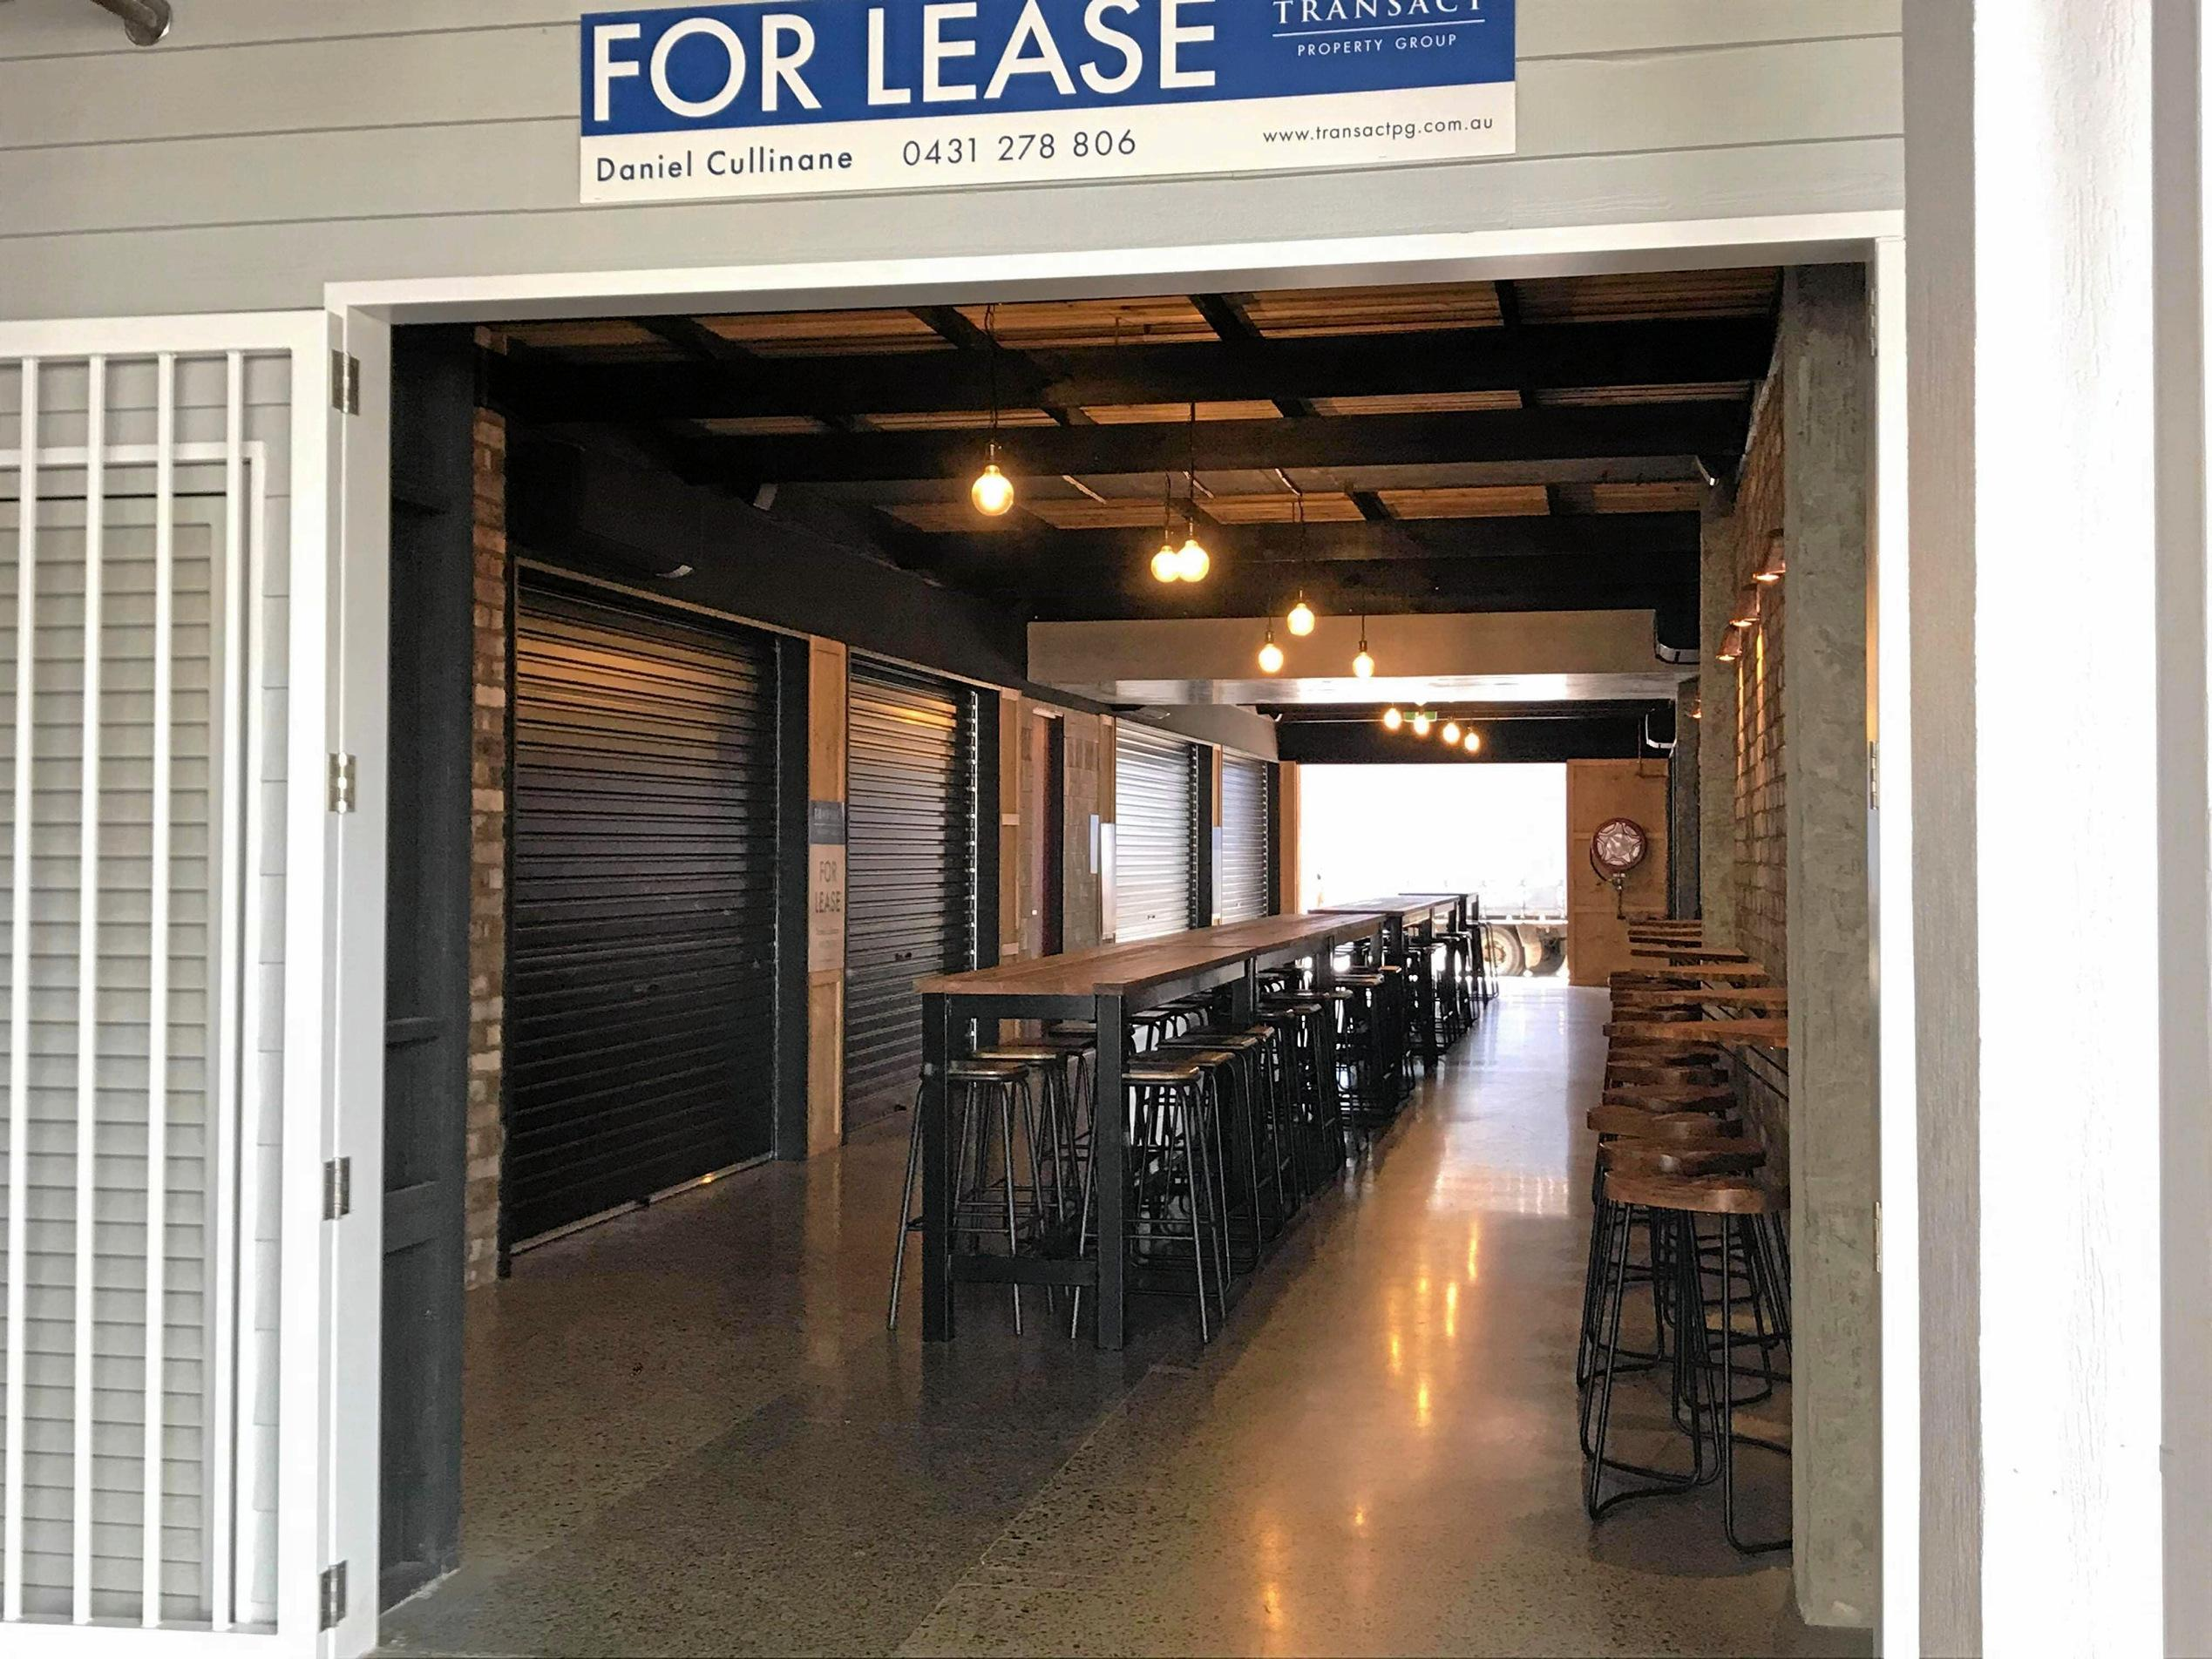 AVAILABLE: A laneway tenancy is available at The Wharf.